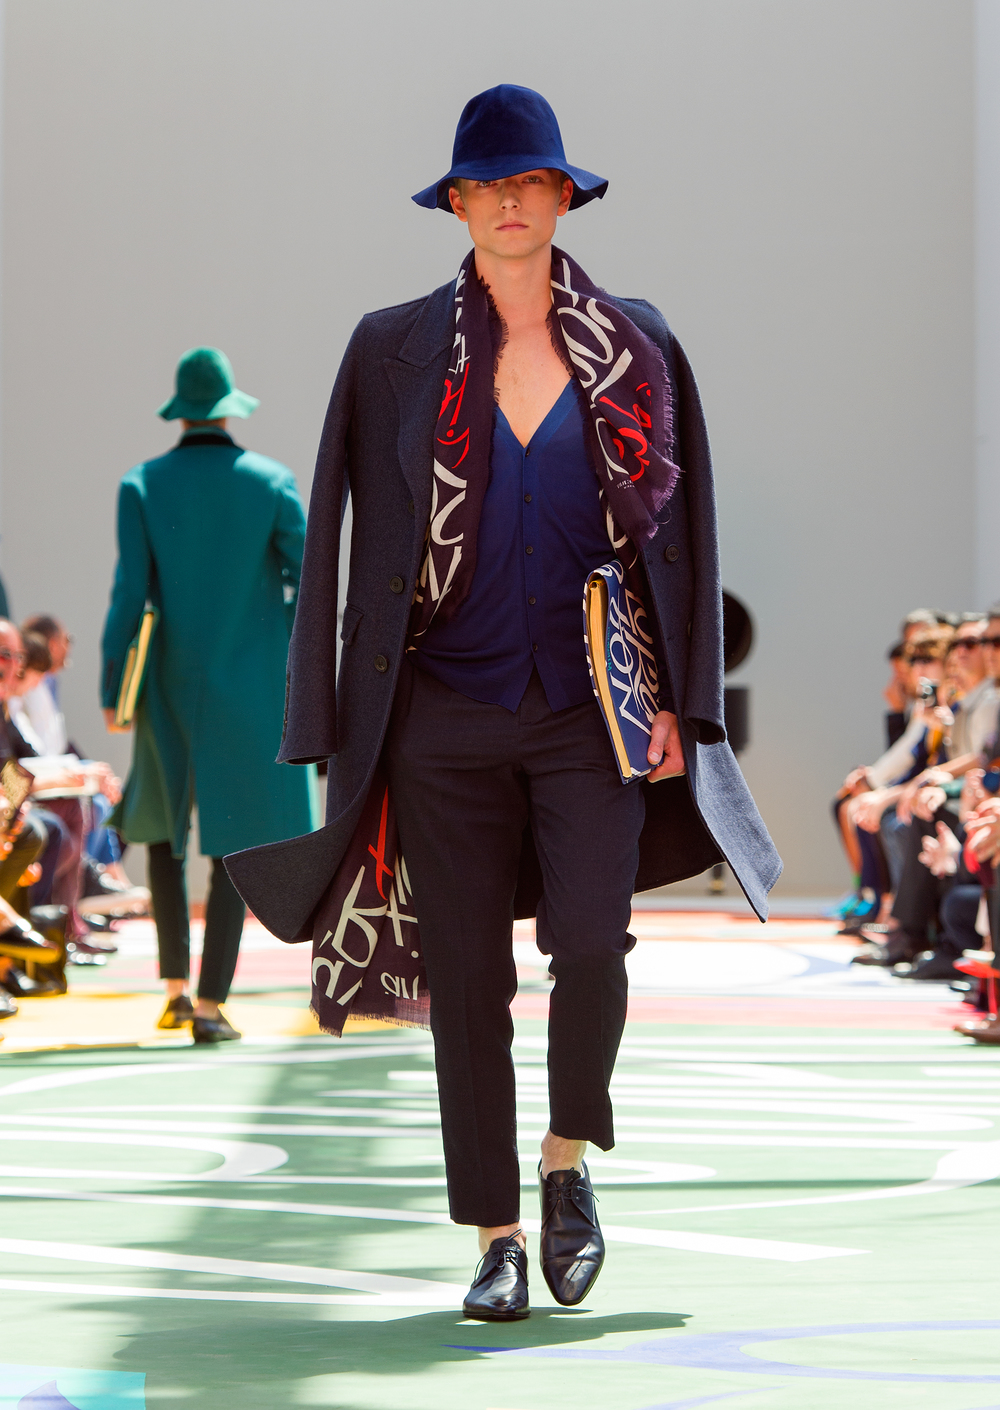 Burberry Prorsum Menswear Spring Summer 2015 Collection - Look 38.jpg